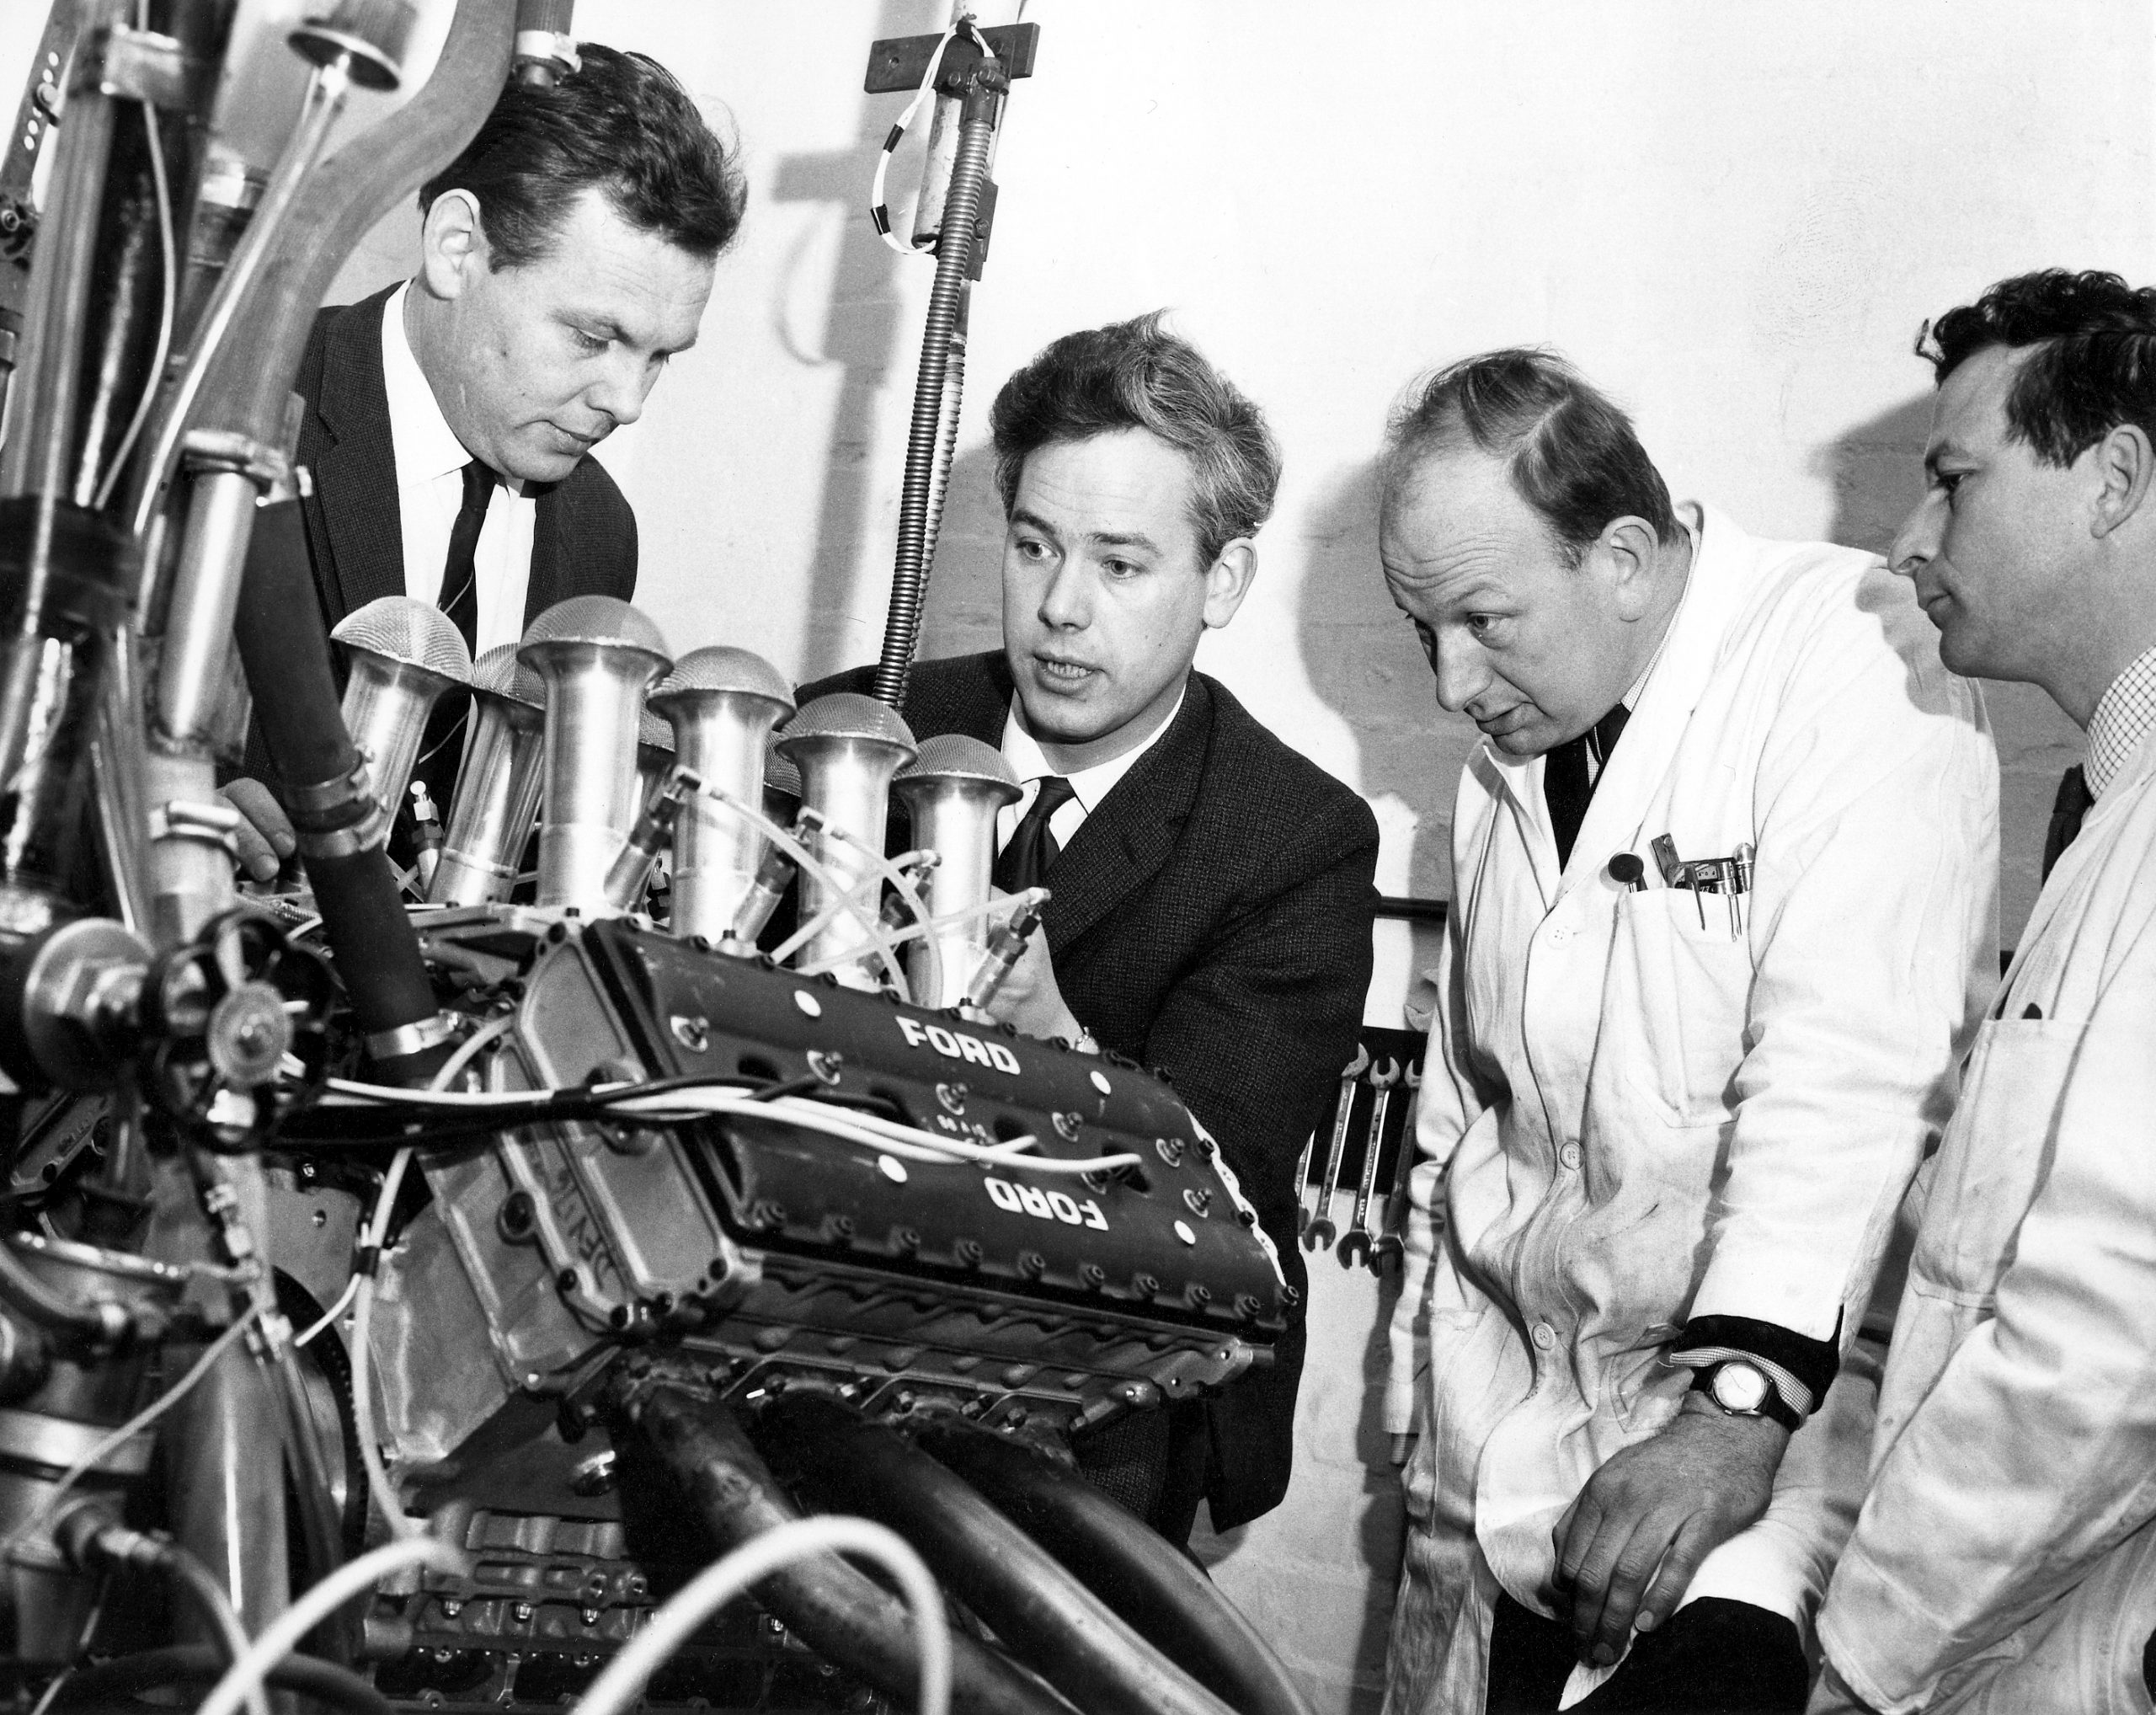 9 of the world's greatest engine designers